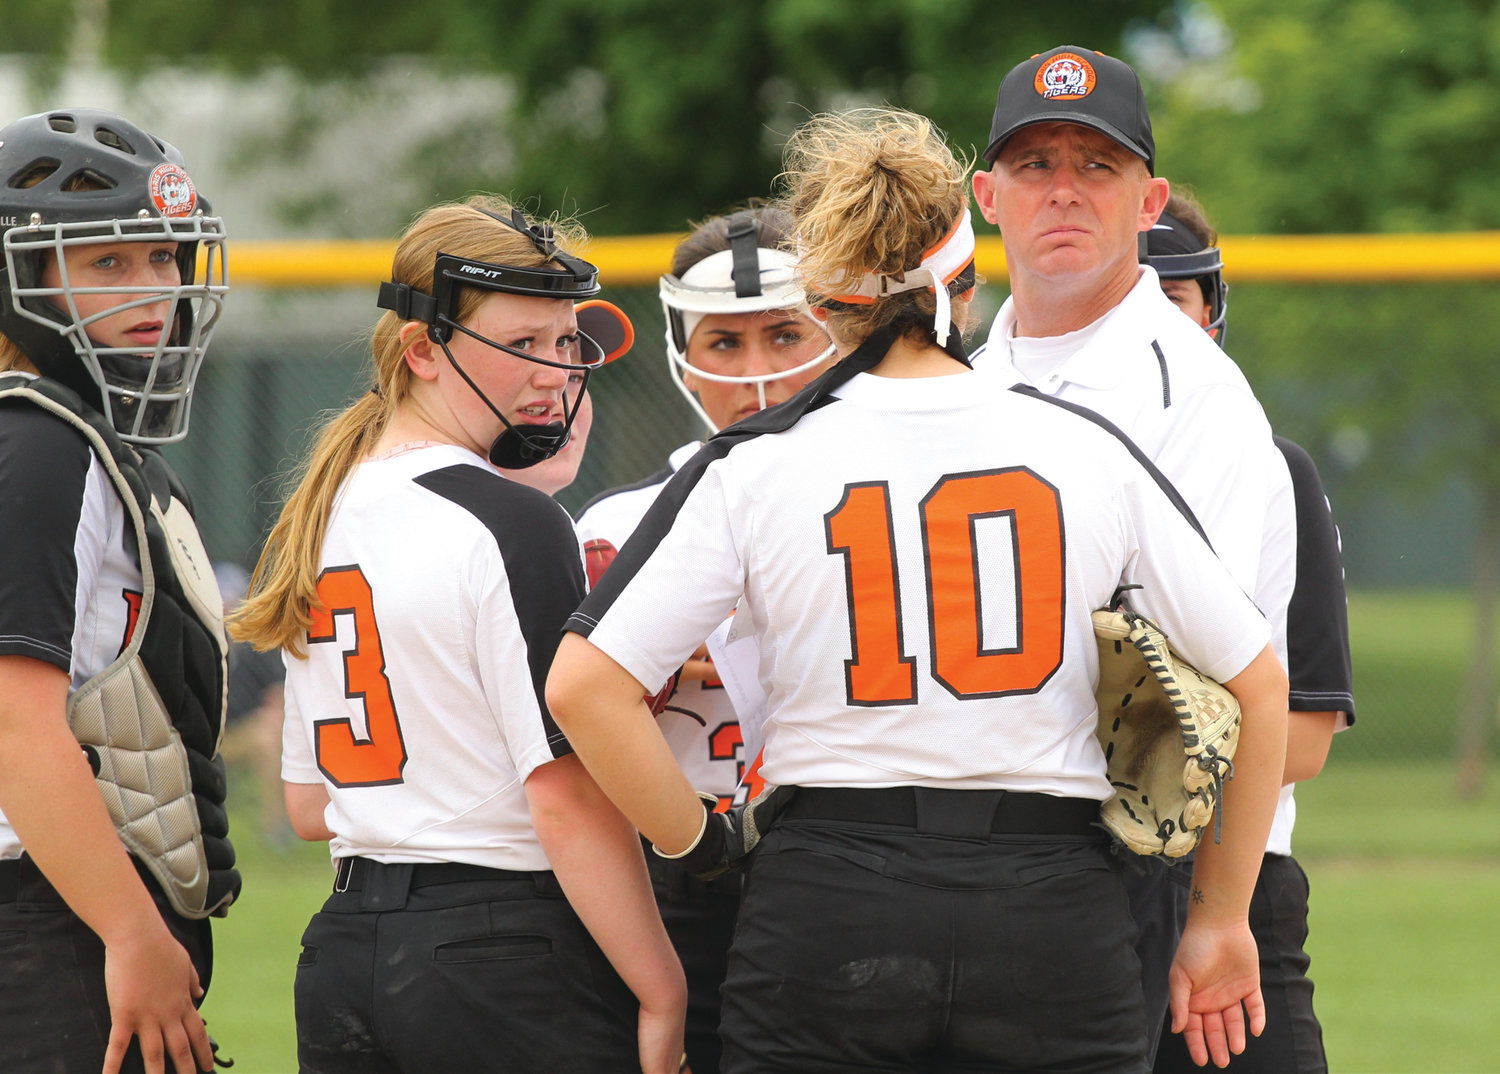 Paris softball head coach Jeremy Clodfelder meets with pitcher Karley Moore (3) and other members of the team in the pitching circle in an IHSA Class 3A regional championship game at Wabash Park in Rantoul on Saturday morning, May 25. Paris fell to the Mt. Zion Lady Braves 4-0 to finish 2019 season 28-3 overall, a school-record for single-season wins.